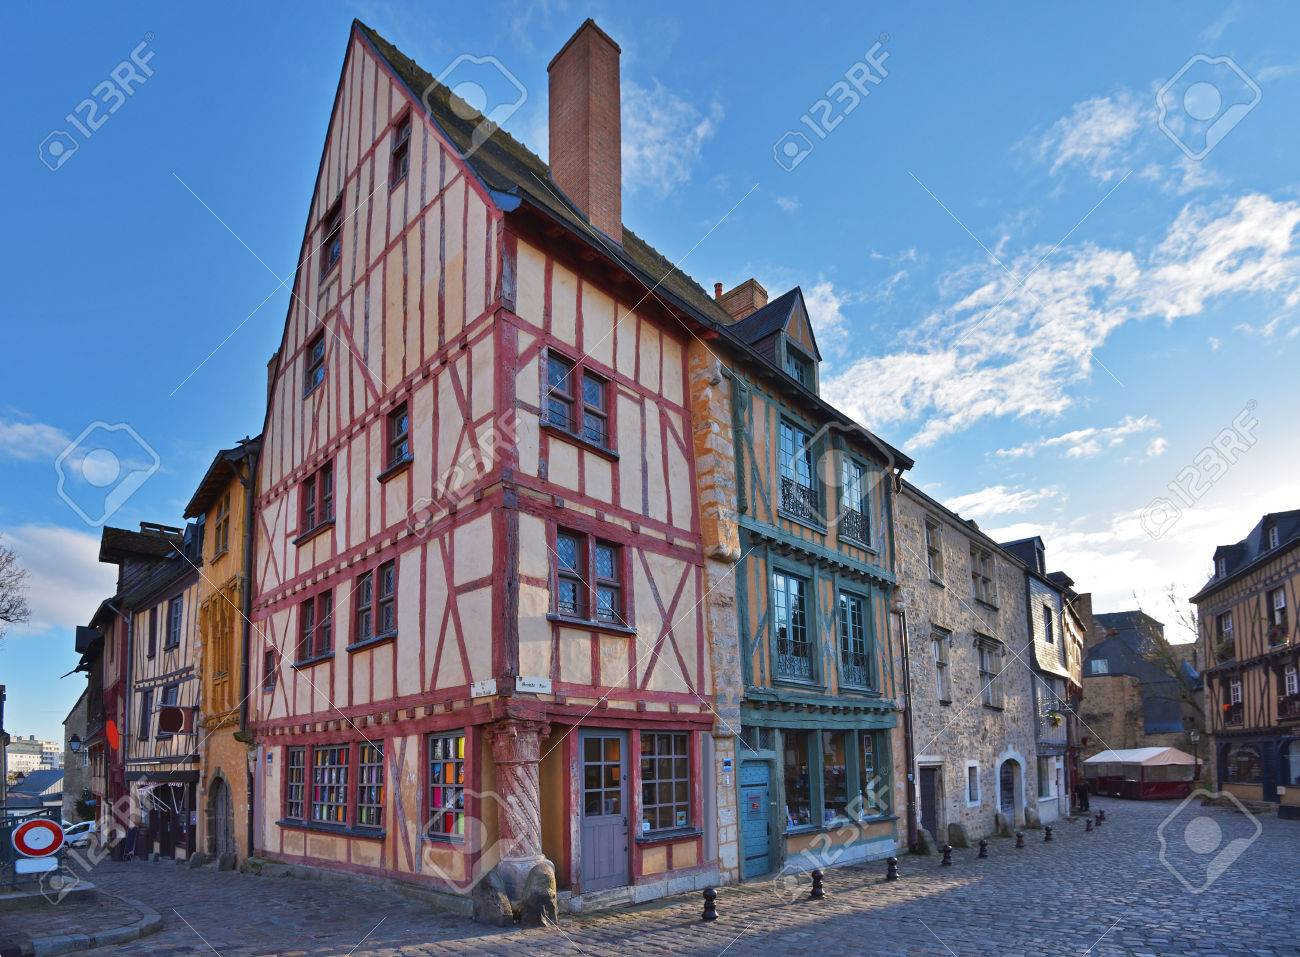 Architecte Le Mans le mans has a well-preserved old town. it also called vieux mans.